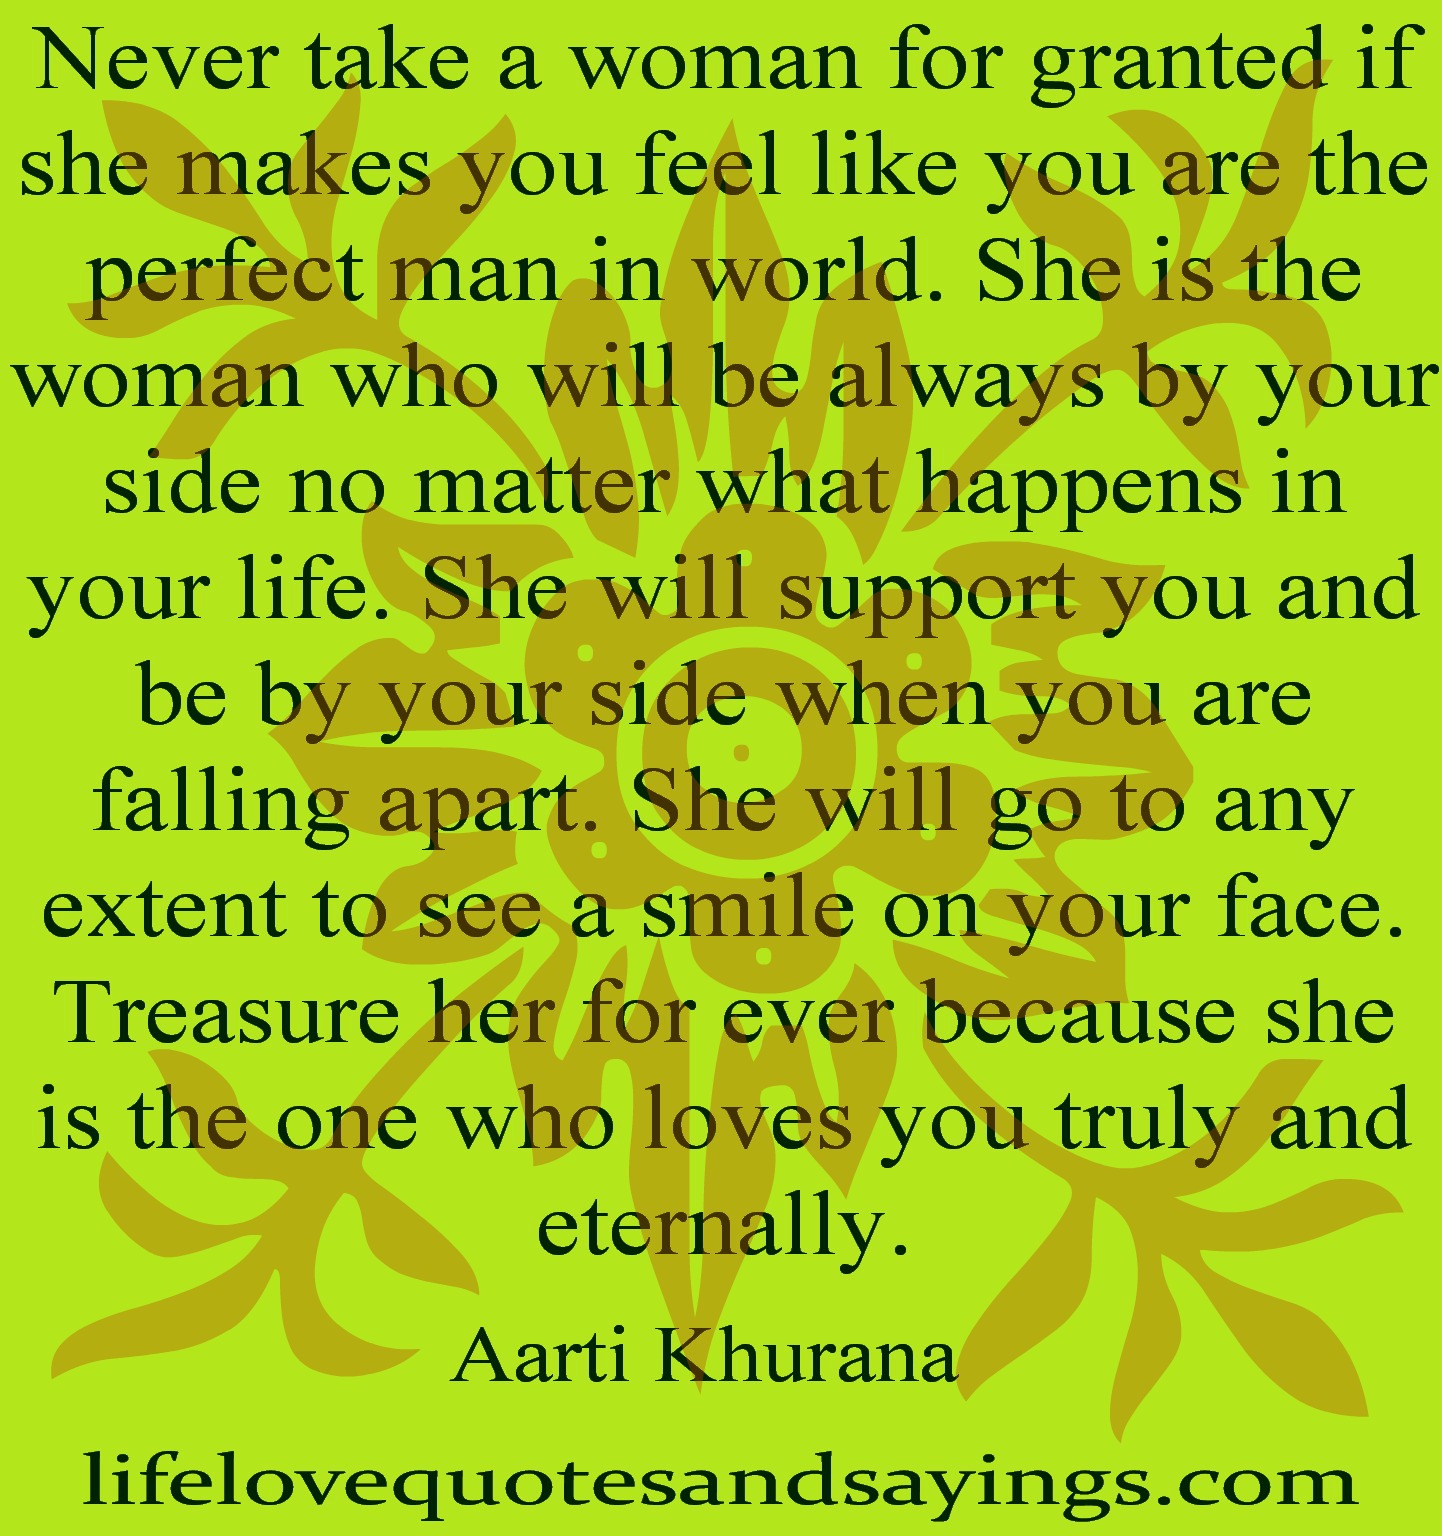 Quotes About Love For Him: Love And Support Quotes For Him. QuotesGram